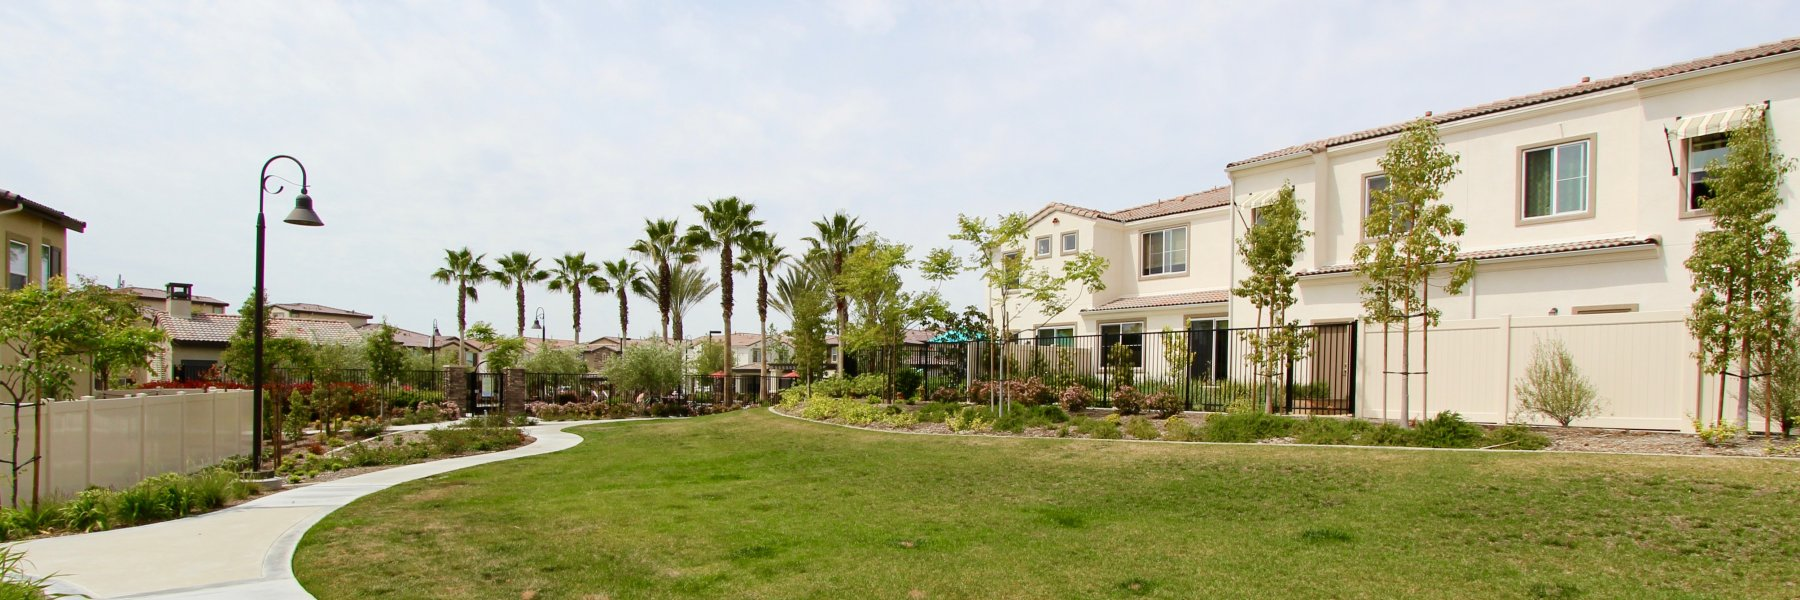 Aldea is a community of homes in Temecula California